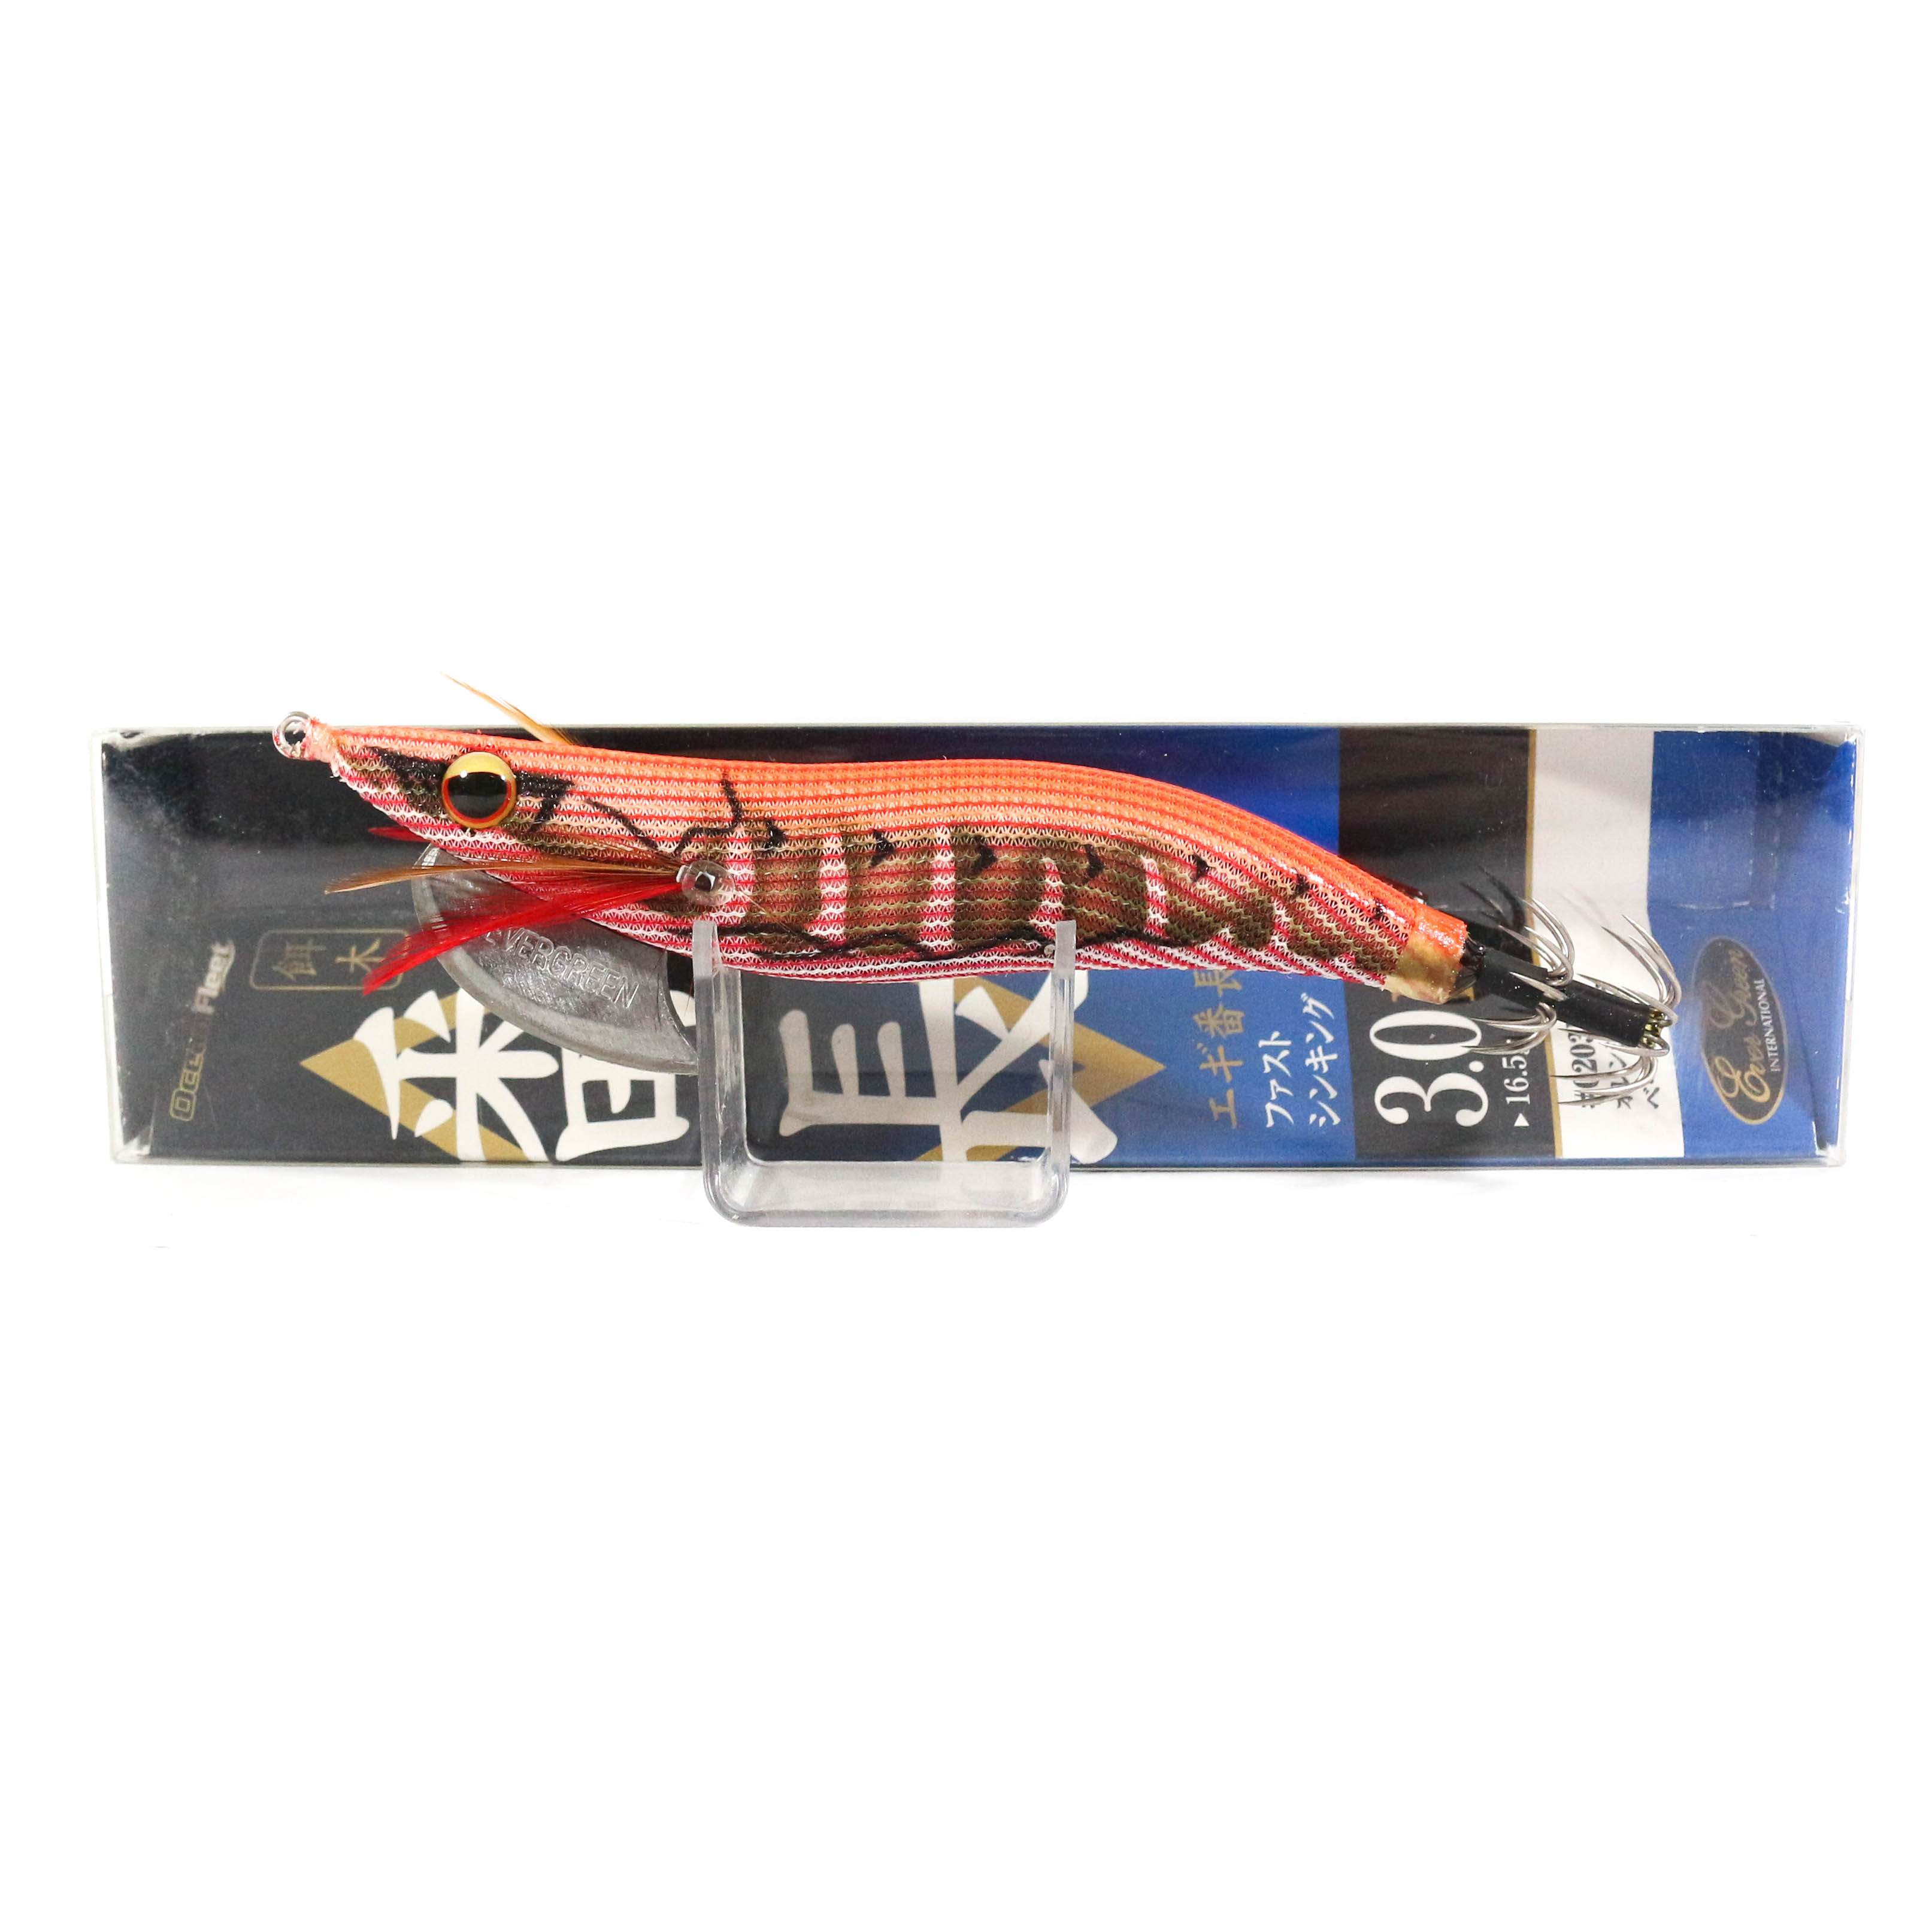 Evergreen Ocean Fleet Custom Squid Jig Lure 3.0D 0203R (3344)